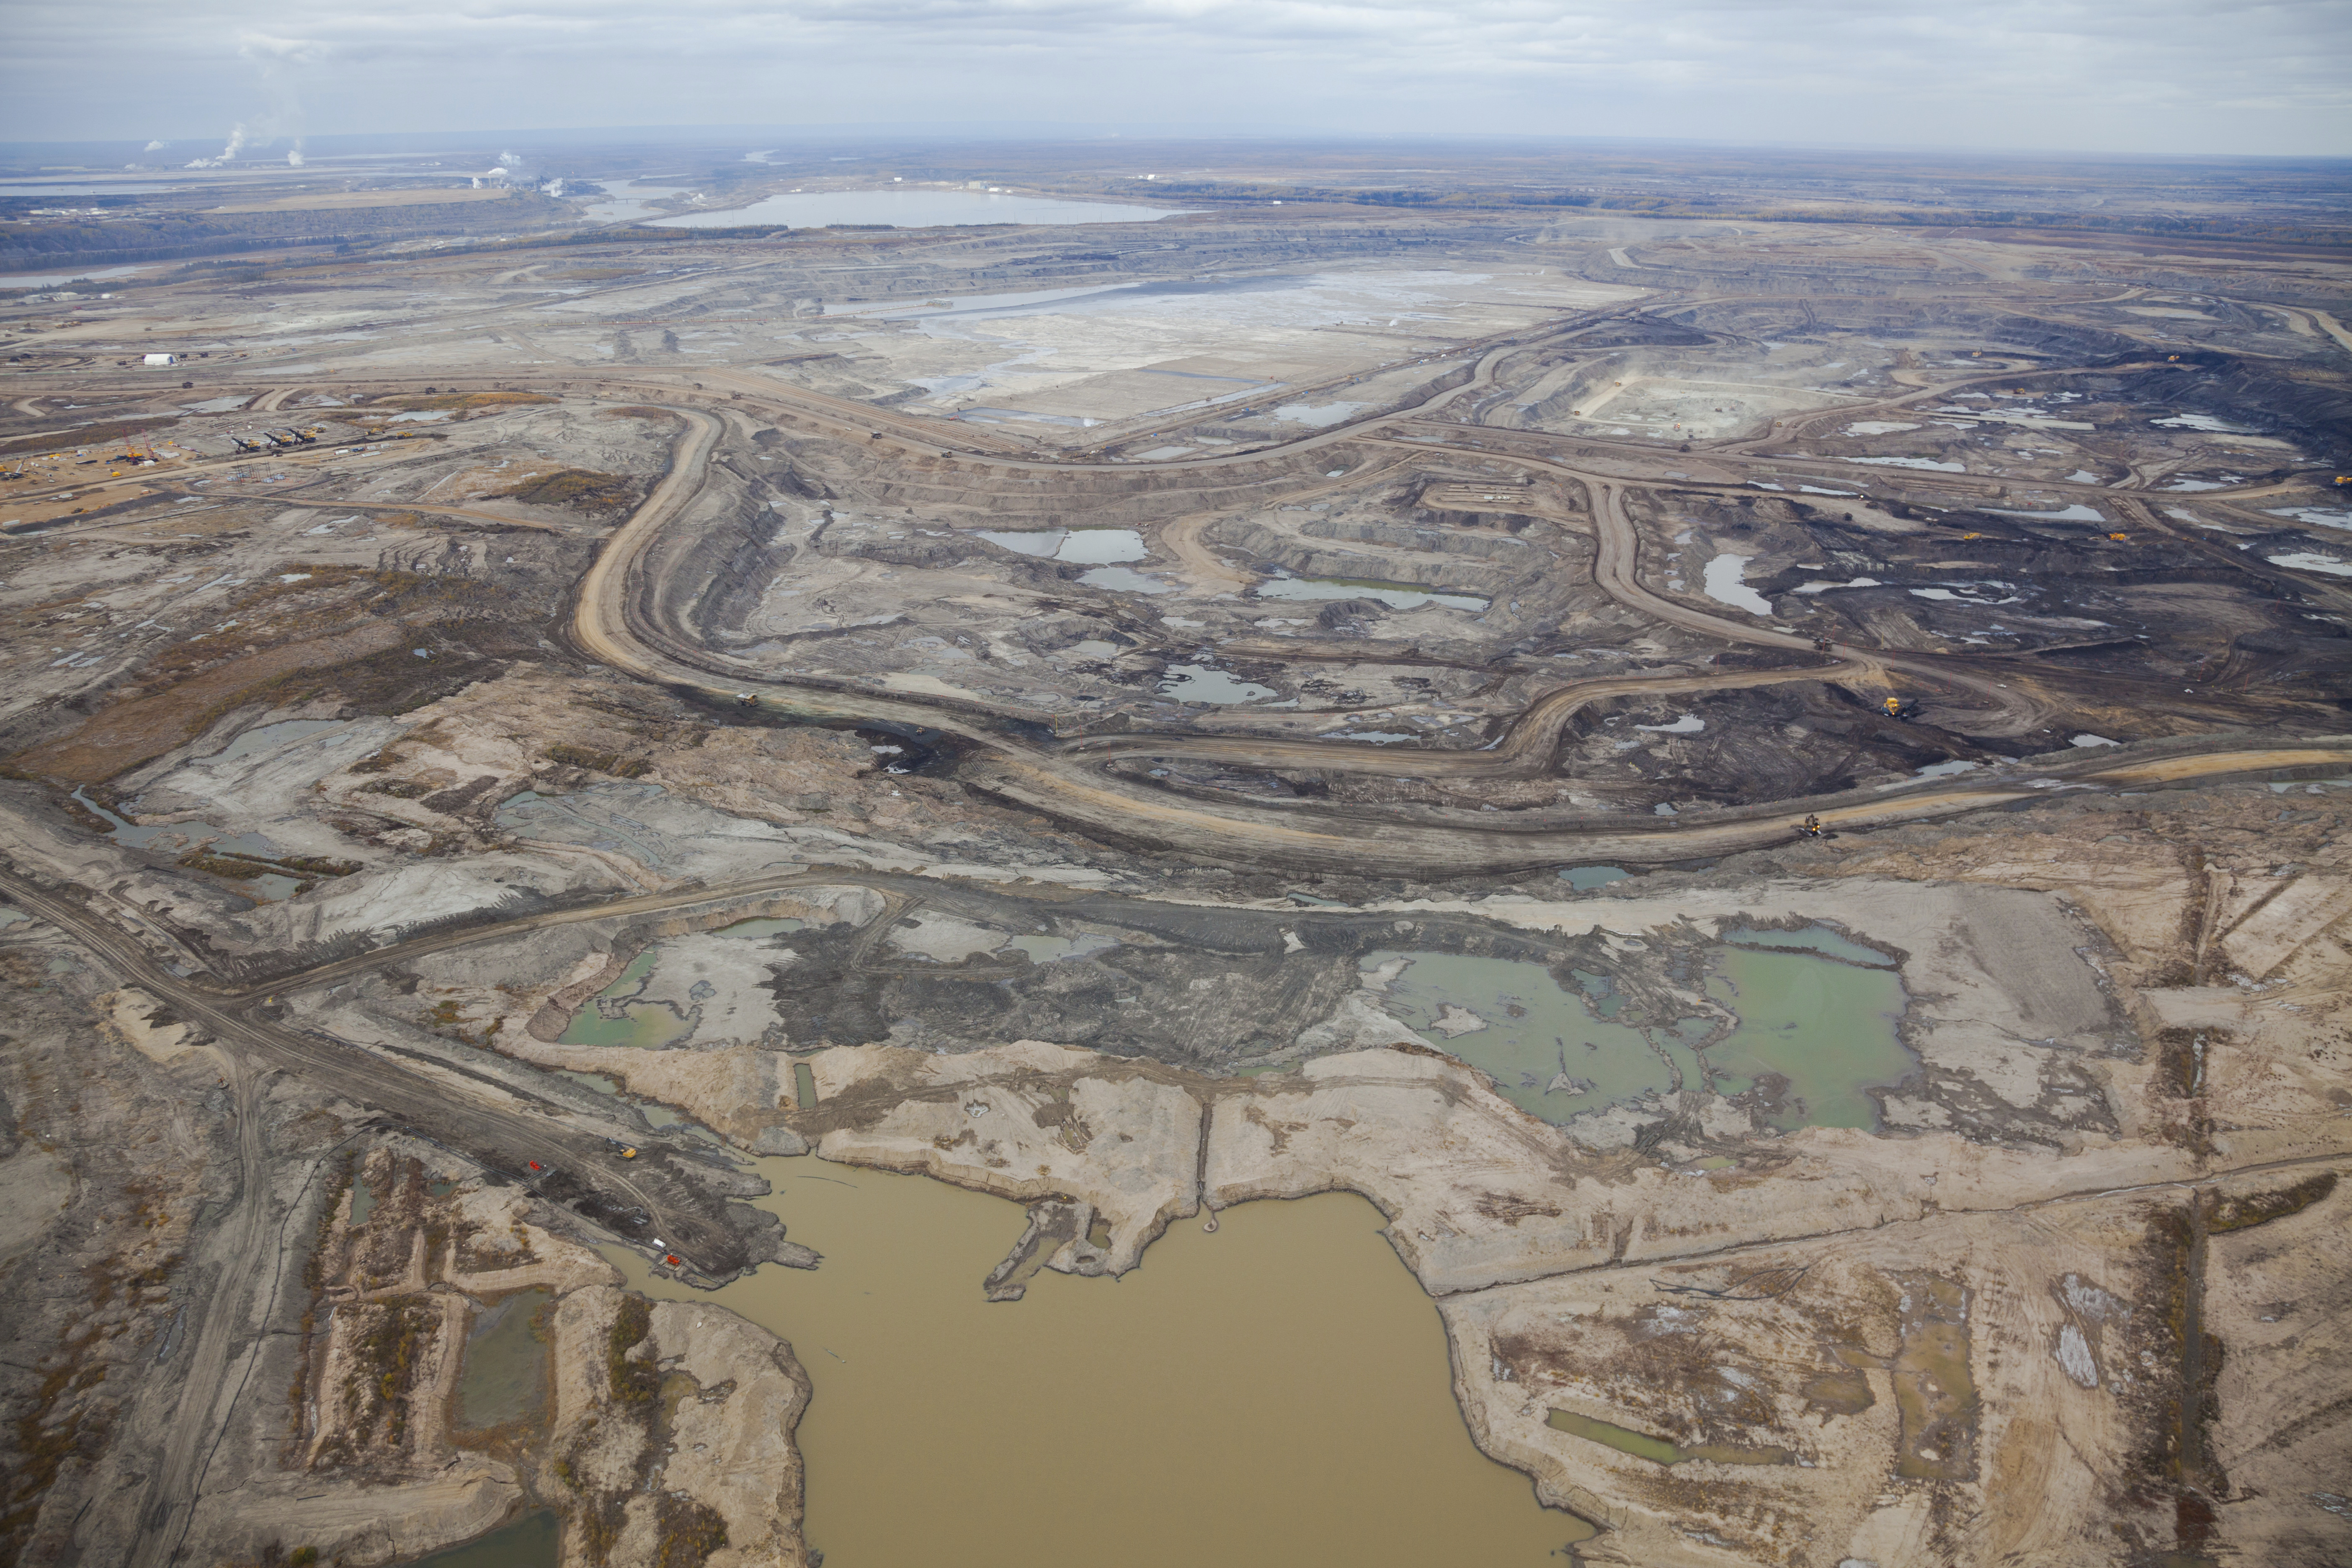 keystone xl oil sands